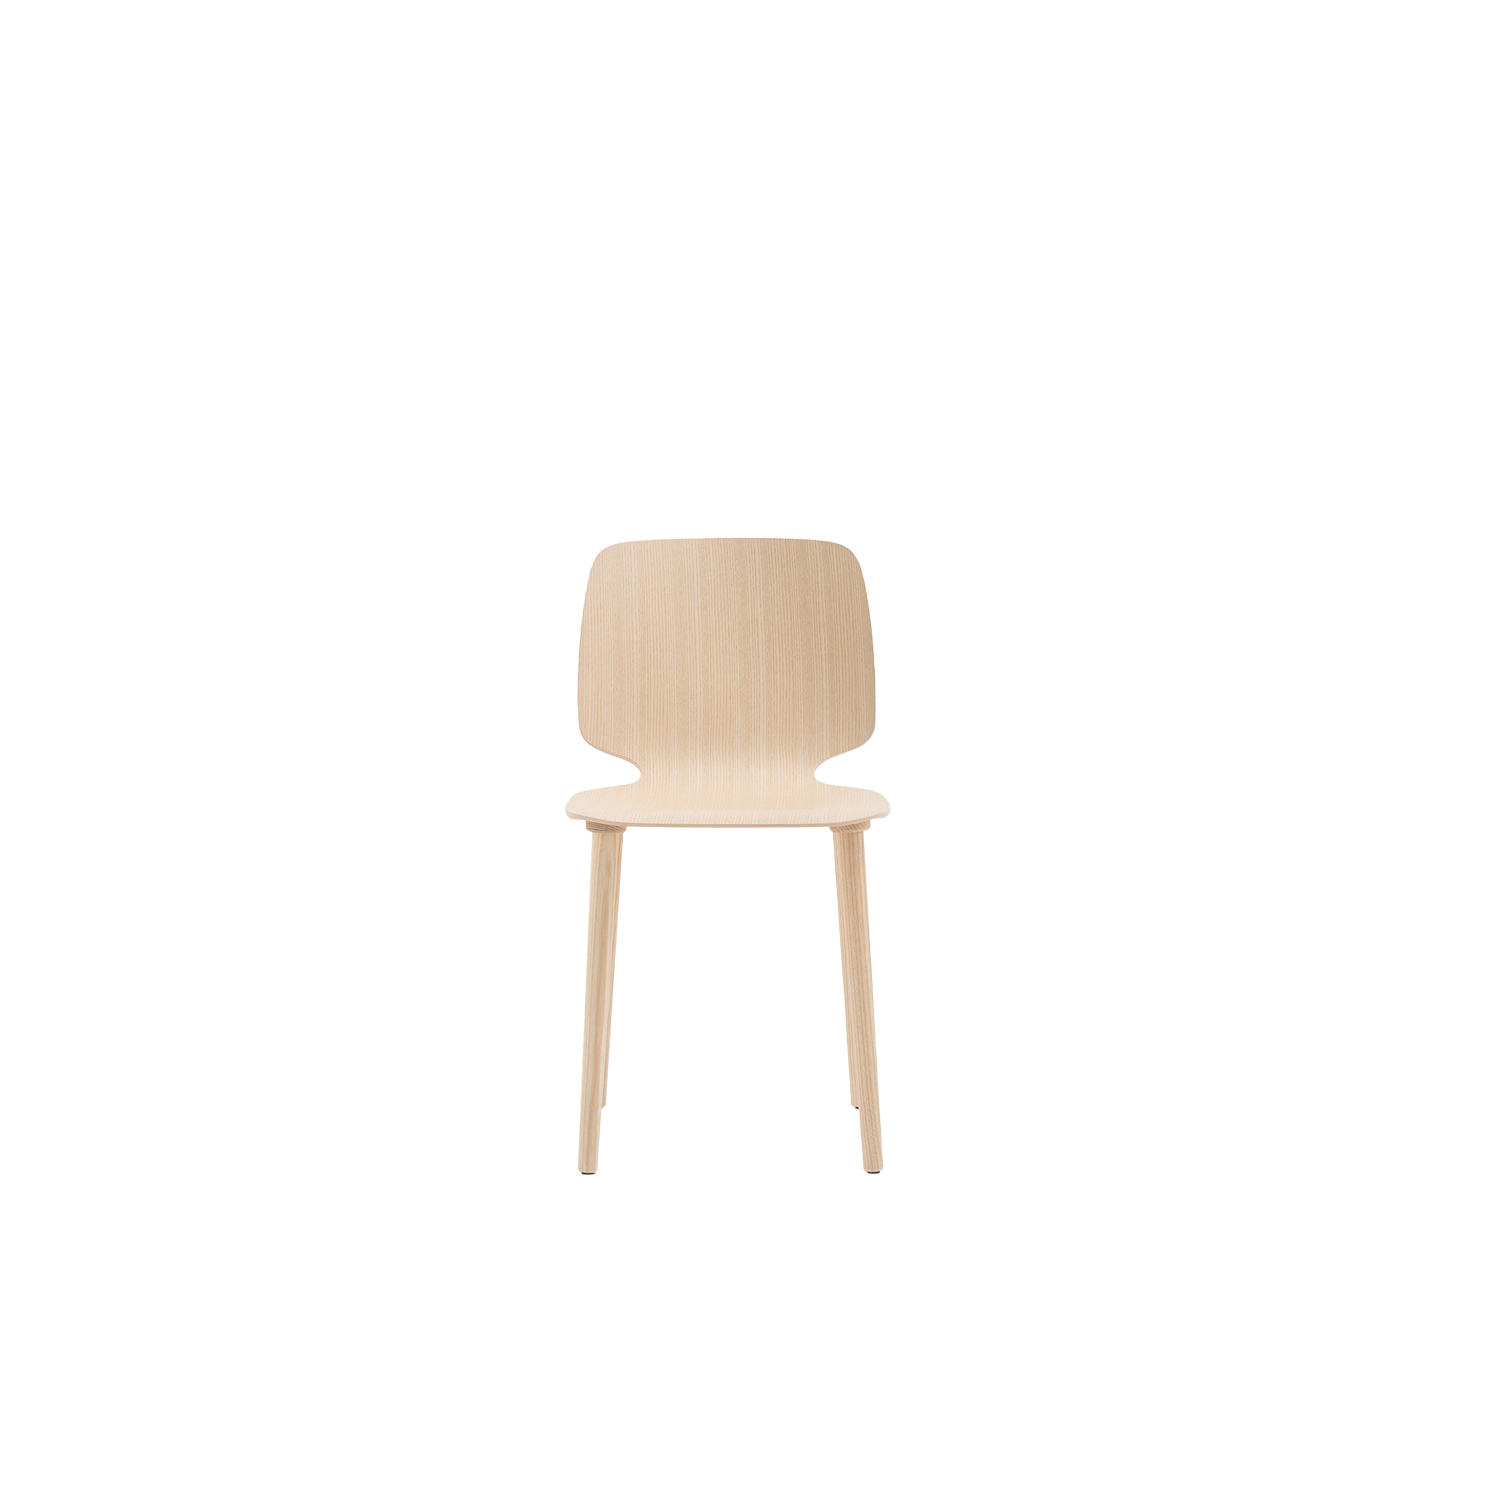 Babila Wooden Chair - Babila collection is able to move along tradition and innovation with great agility. The strength of this collection is its simplicity and directness, to recall a timeless shape. Chair with ash plywood shell in variable thickness and solid ash wood legs. | Matter of Stuff